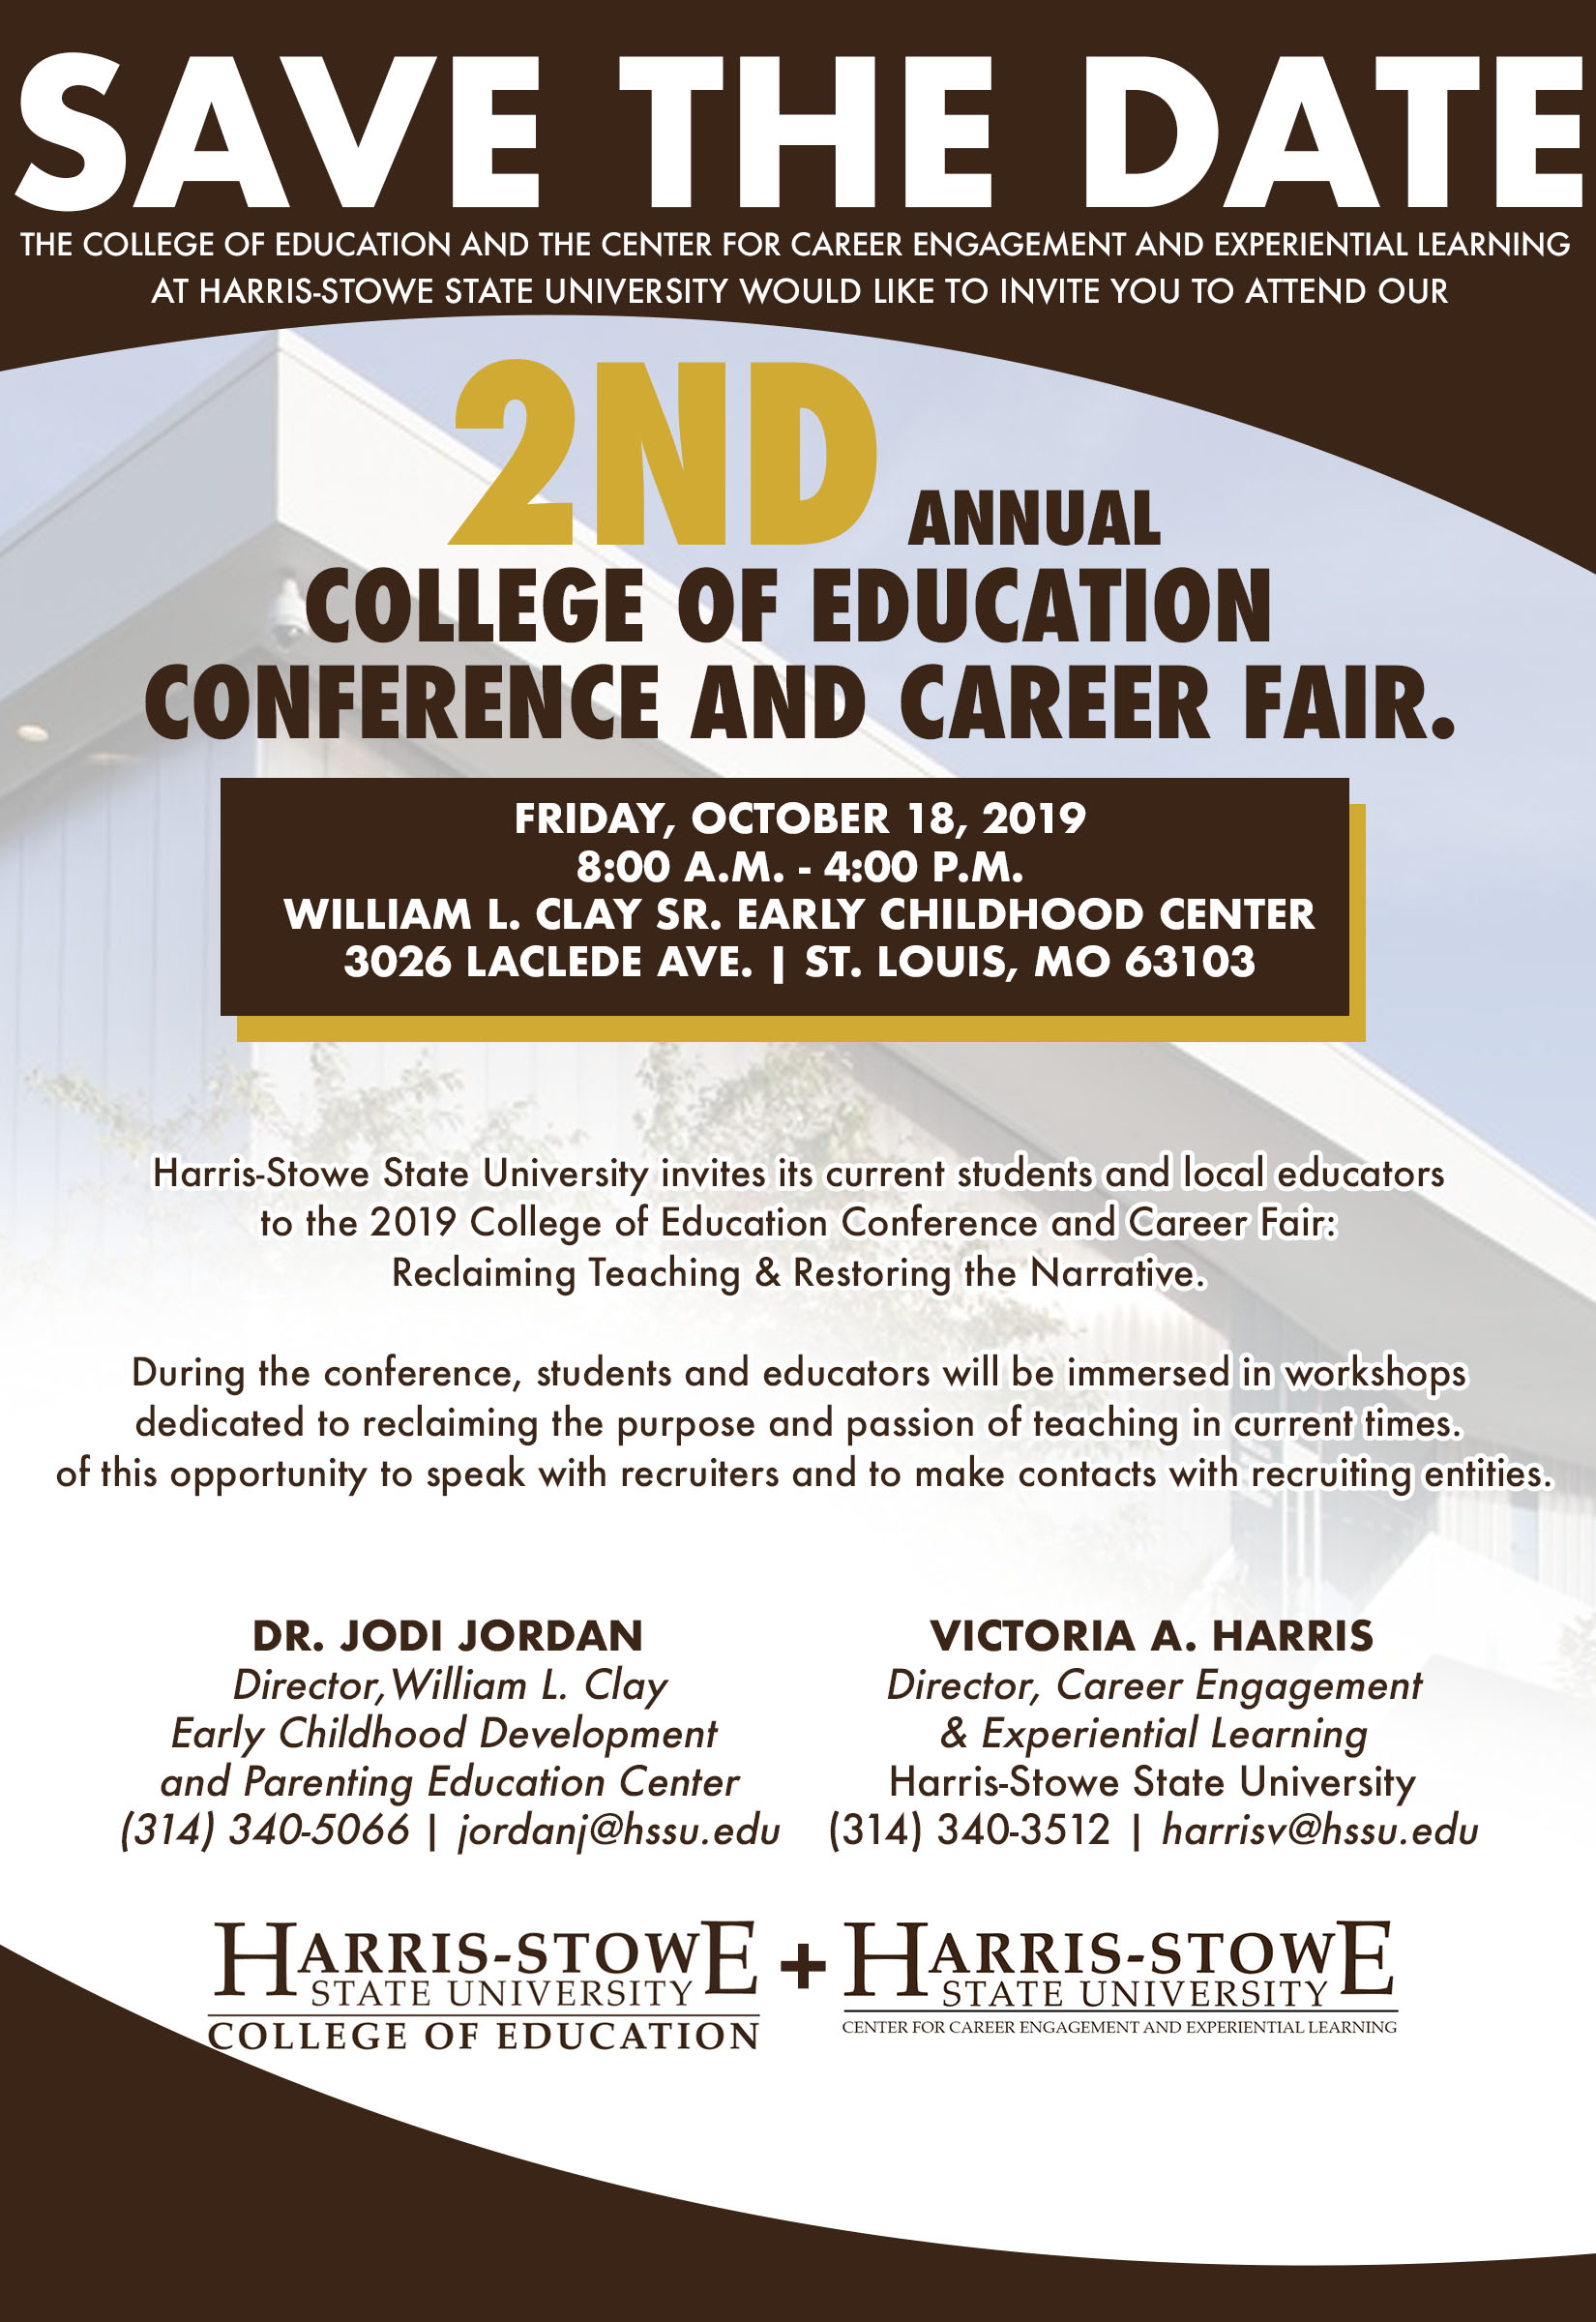 2019 COLLEGE OF EDUCATION CONFERENCE AND CAREER FAIR